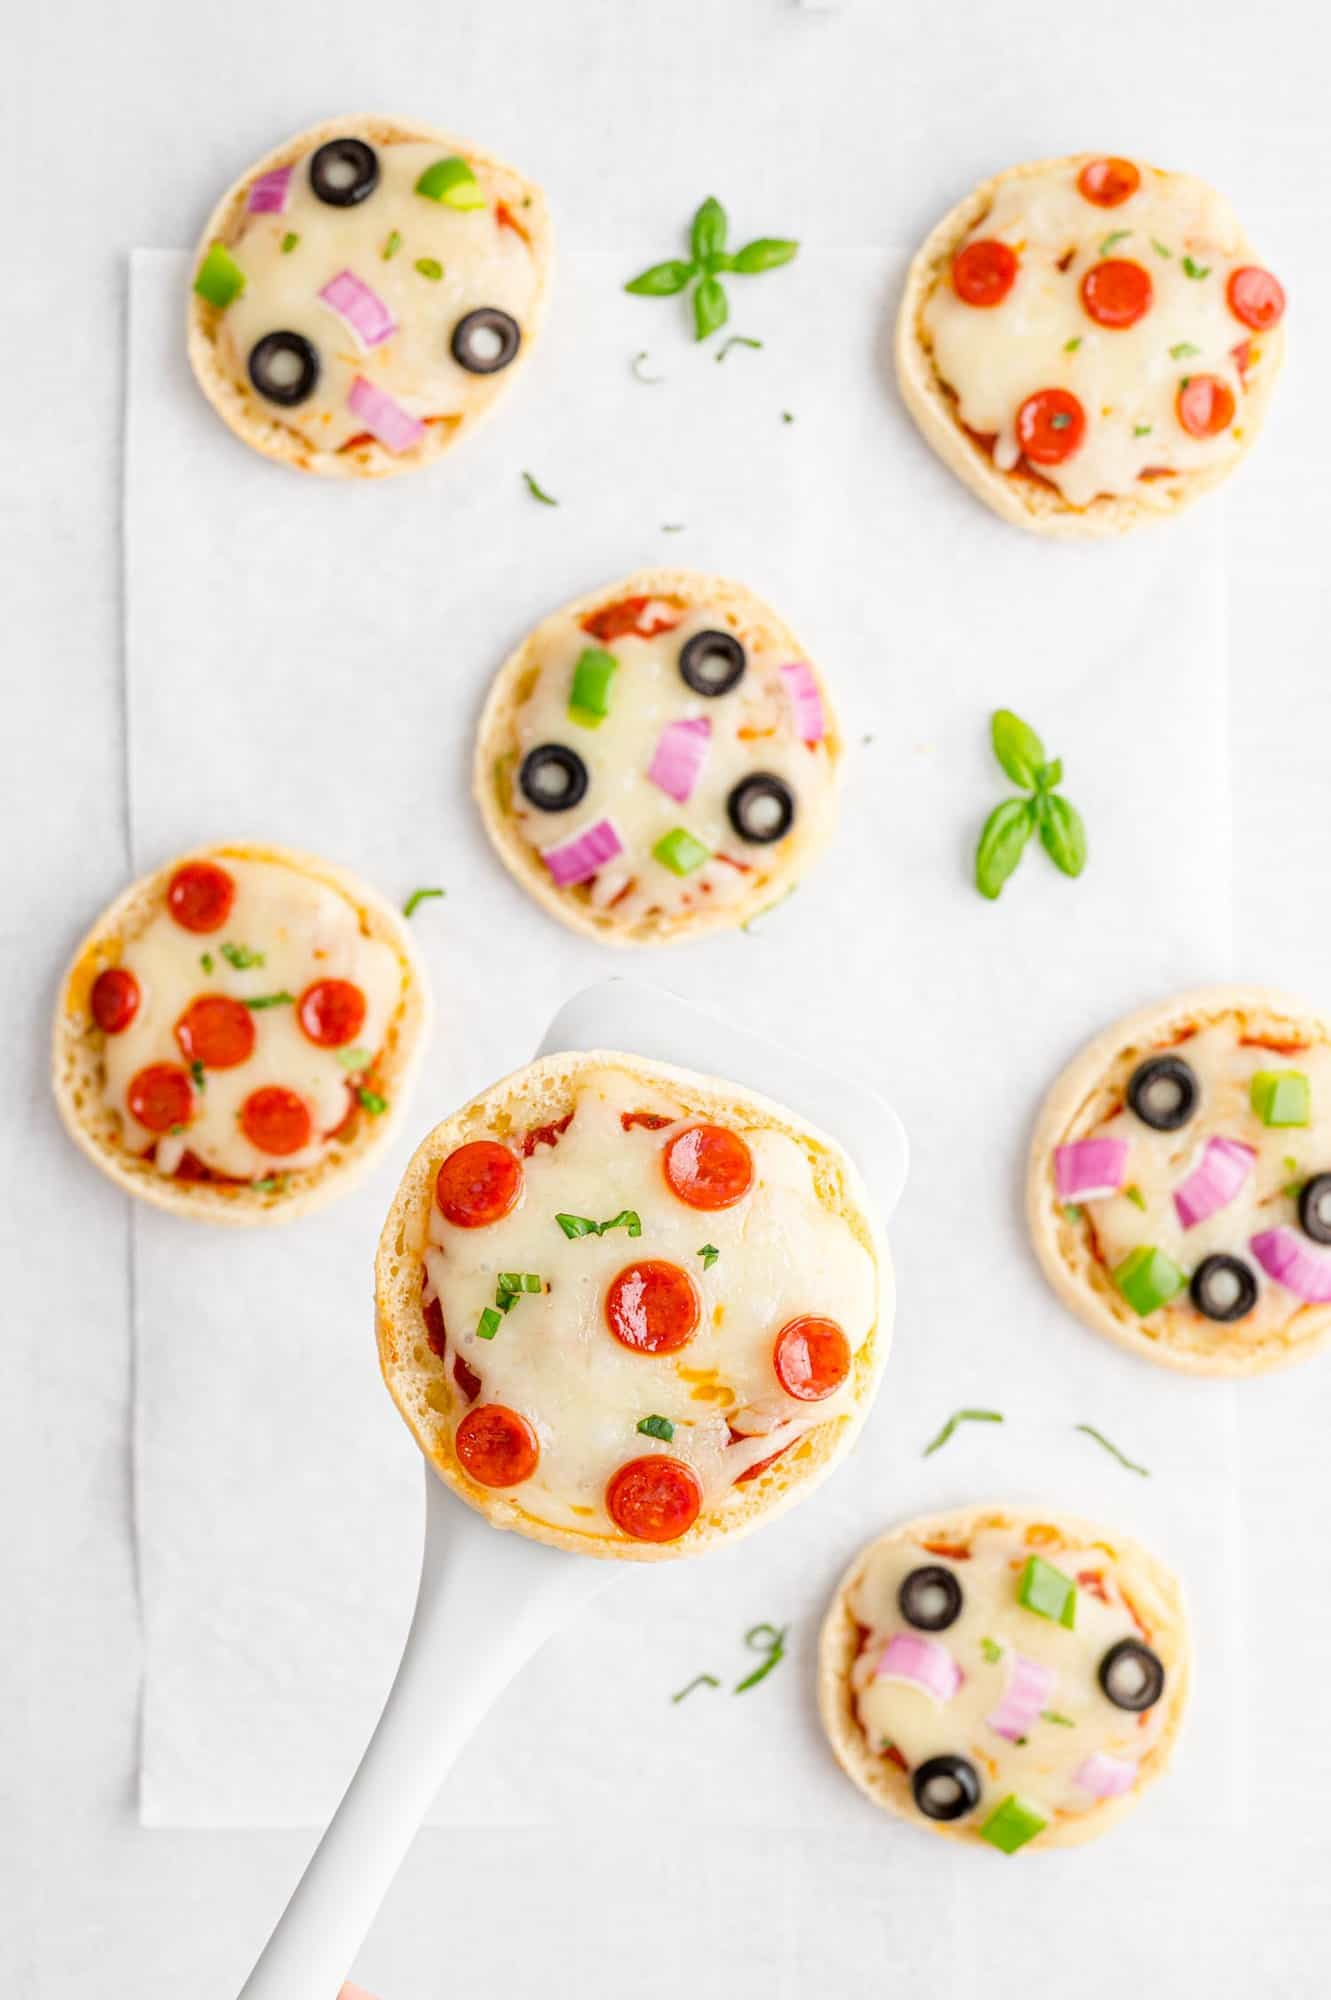 English muffin pizza on a spatula, others visible on a sheet pan.